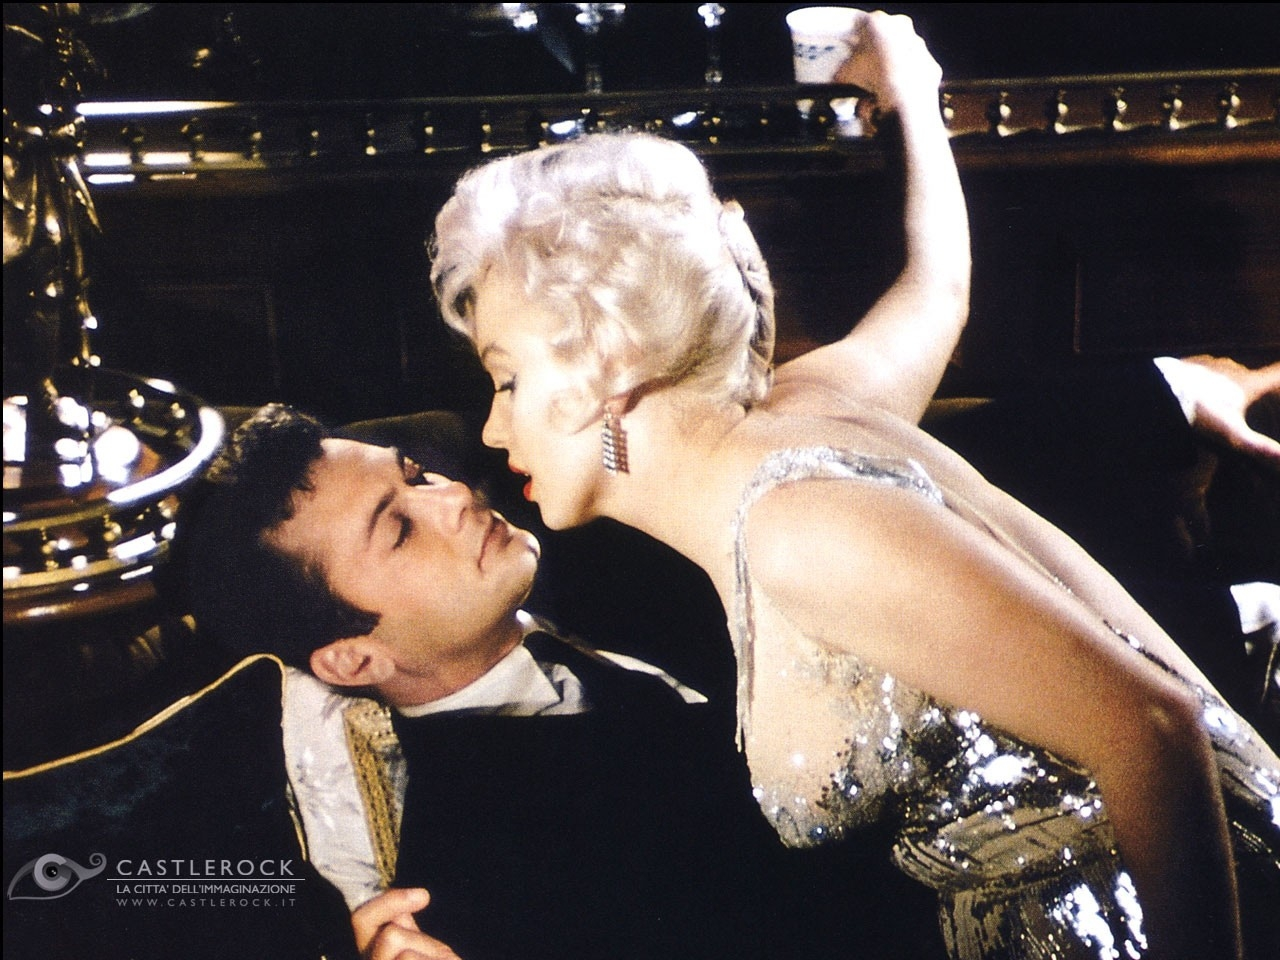 Wallpaper di Marilyn Monroe e Tony Curtis in 'A qualcuno piace caldo'